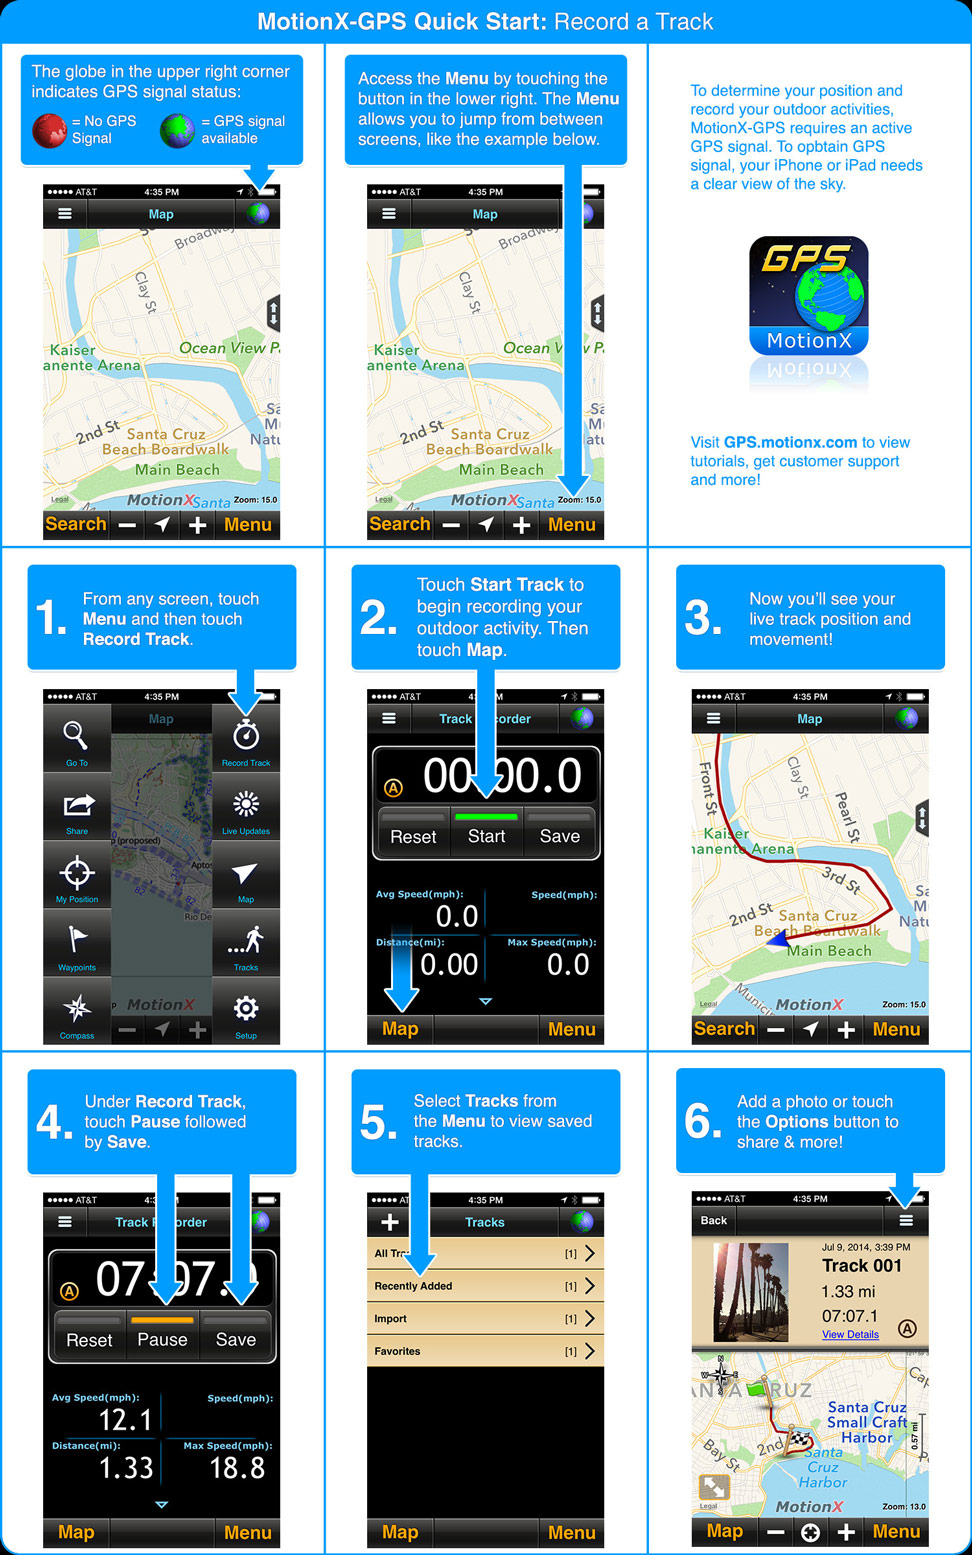 MotionX-GPS Quickstart Guide (for iPhone)